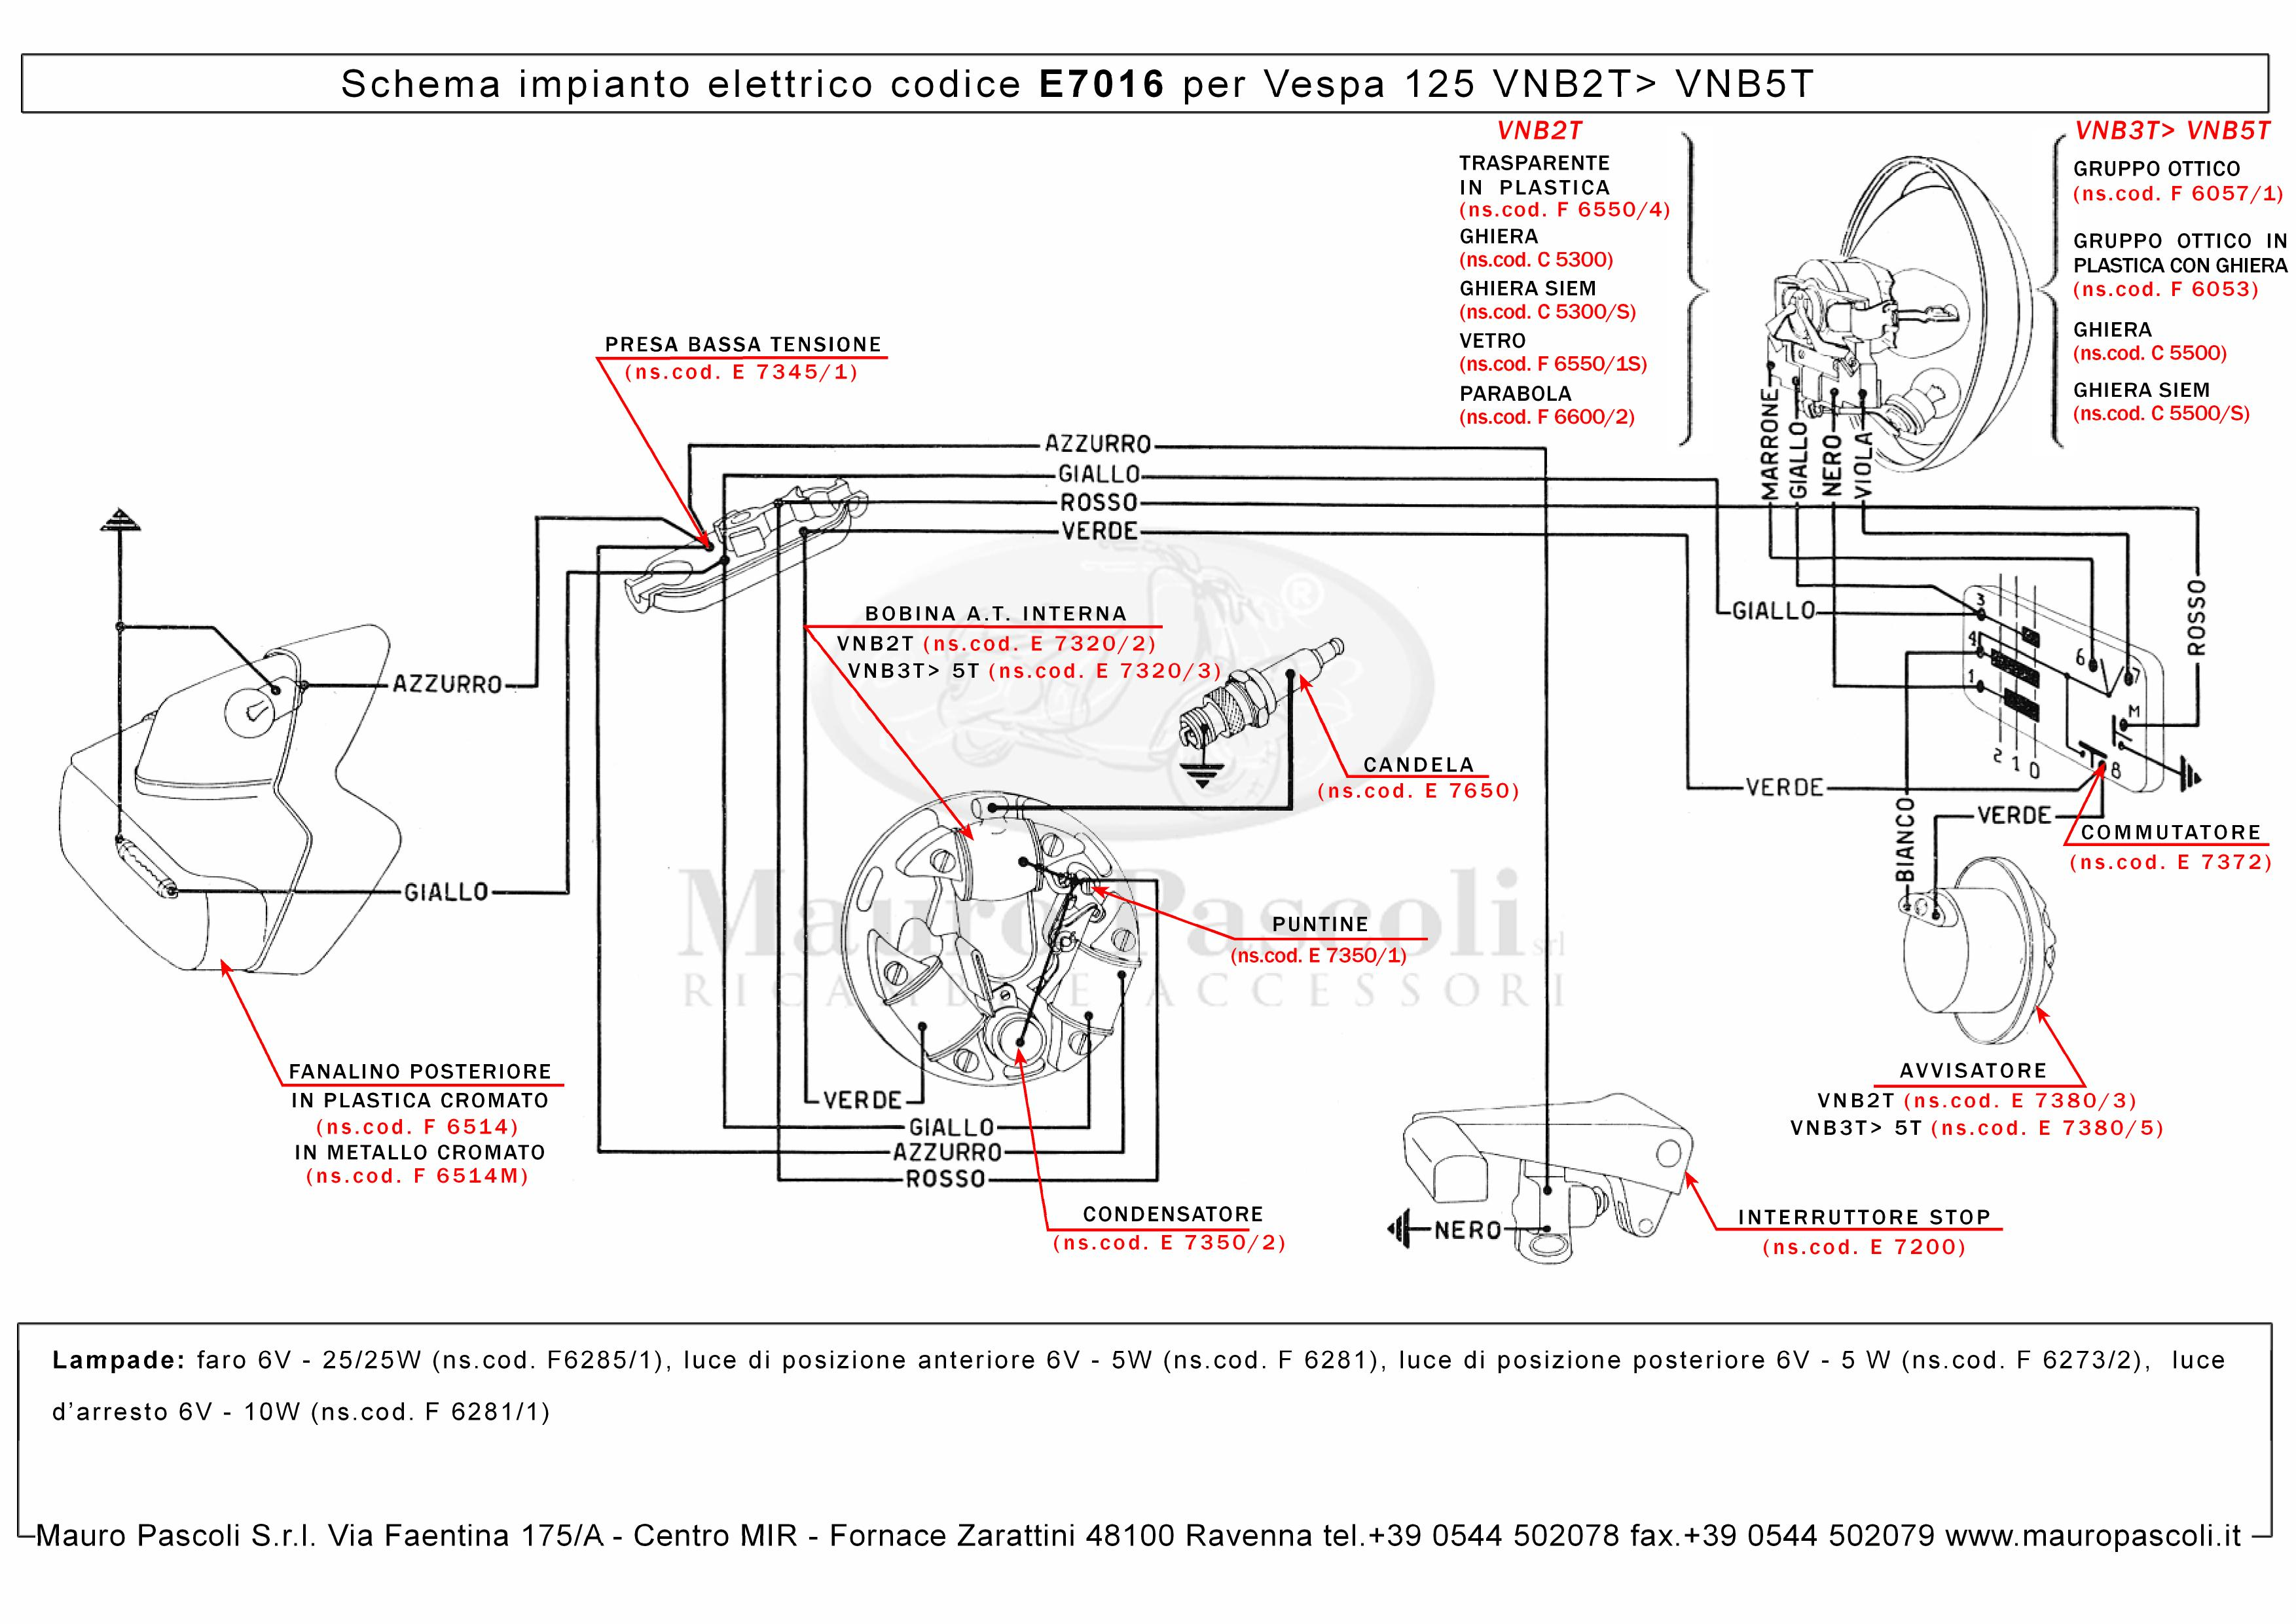 E7016 modern vespa 61 vnb electrical issues vespa vnb wiring diagram at edmiracle.co